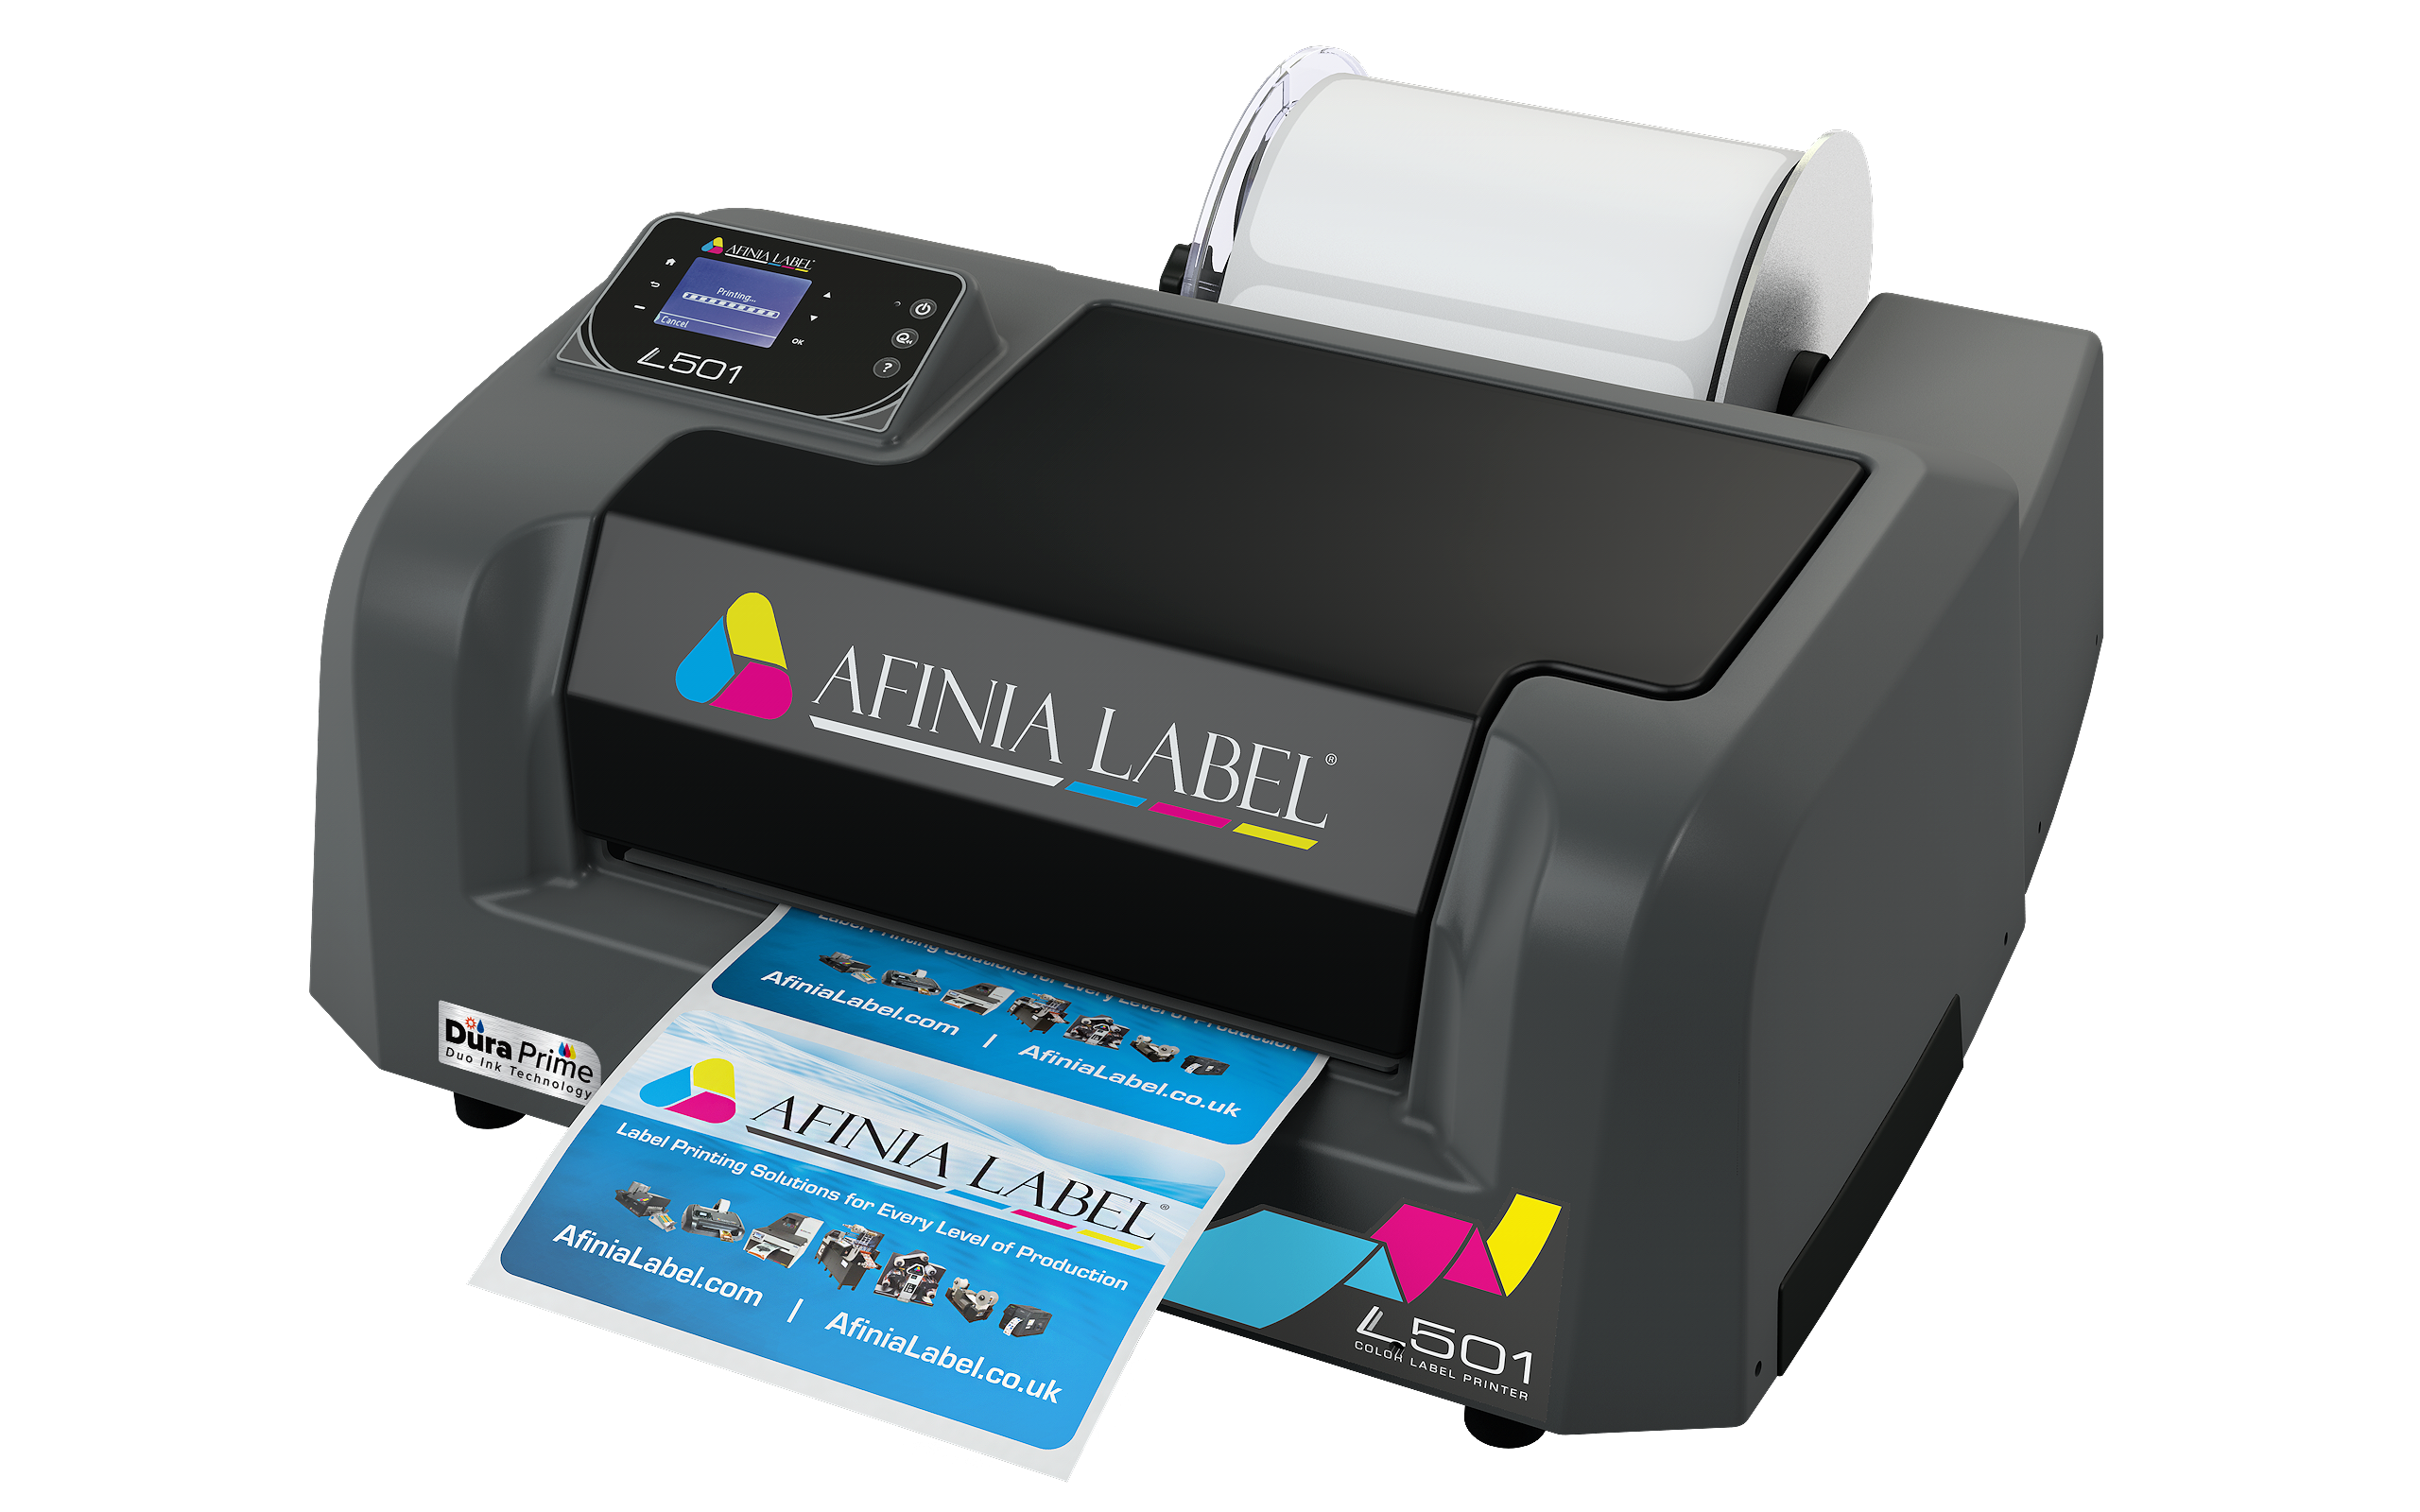 Afinia Label L501 Digital Color Desktop Label Printer